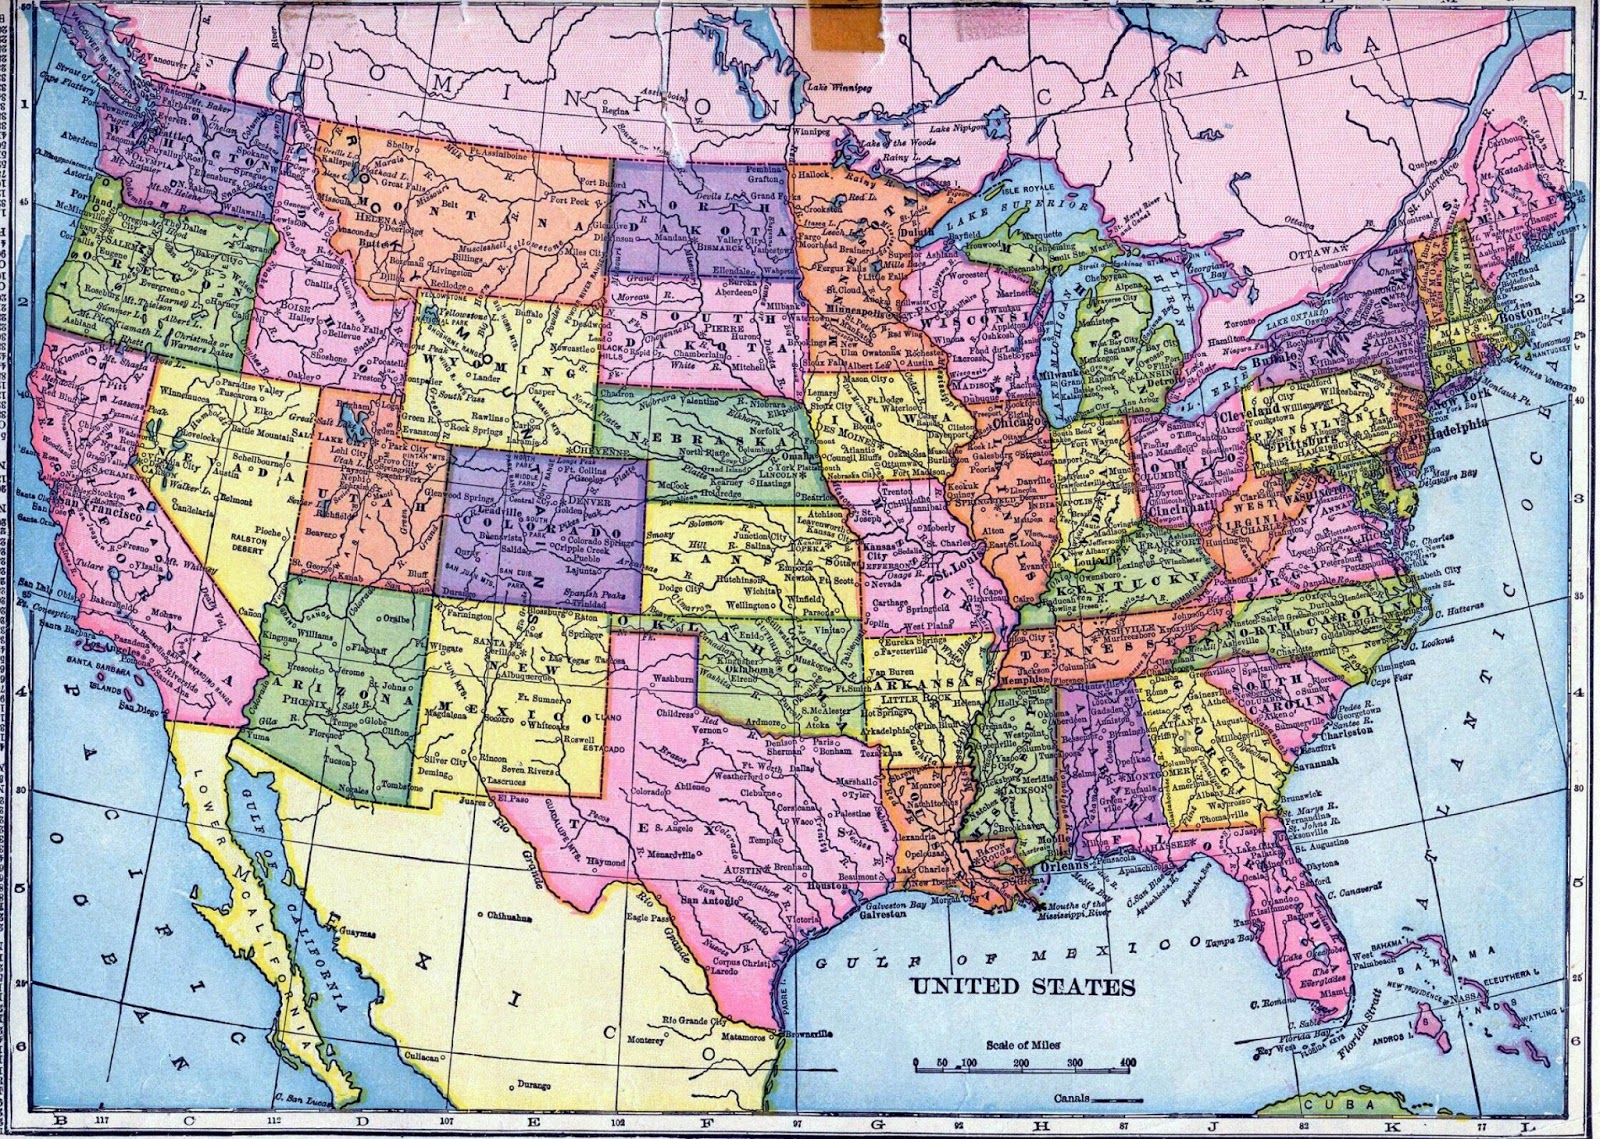 Free download map download united states map download united ...